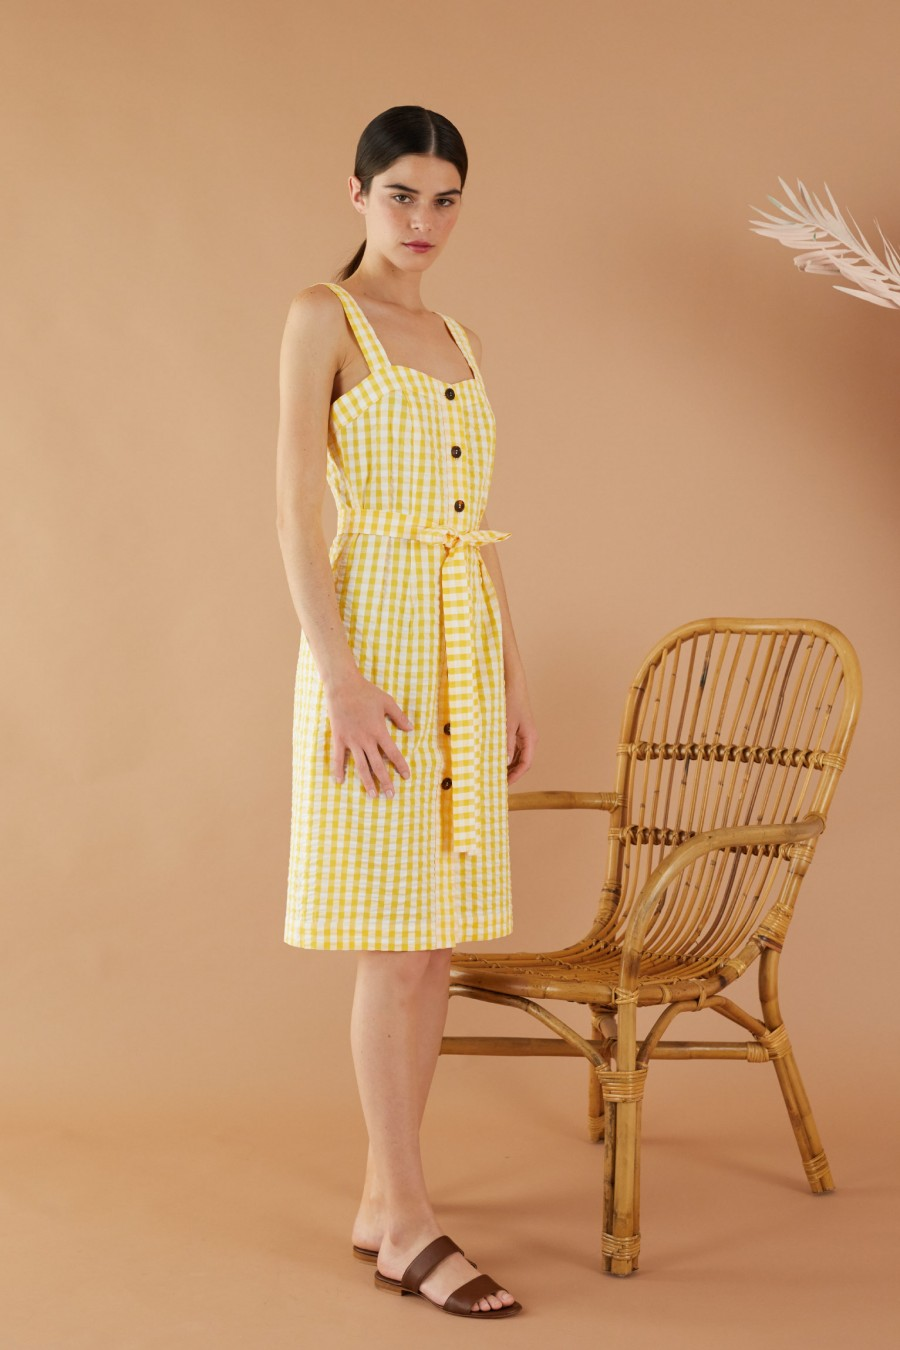 White and yellow Vichy sheath dress